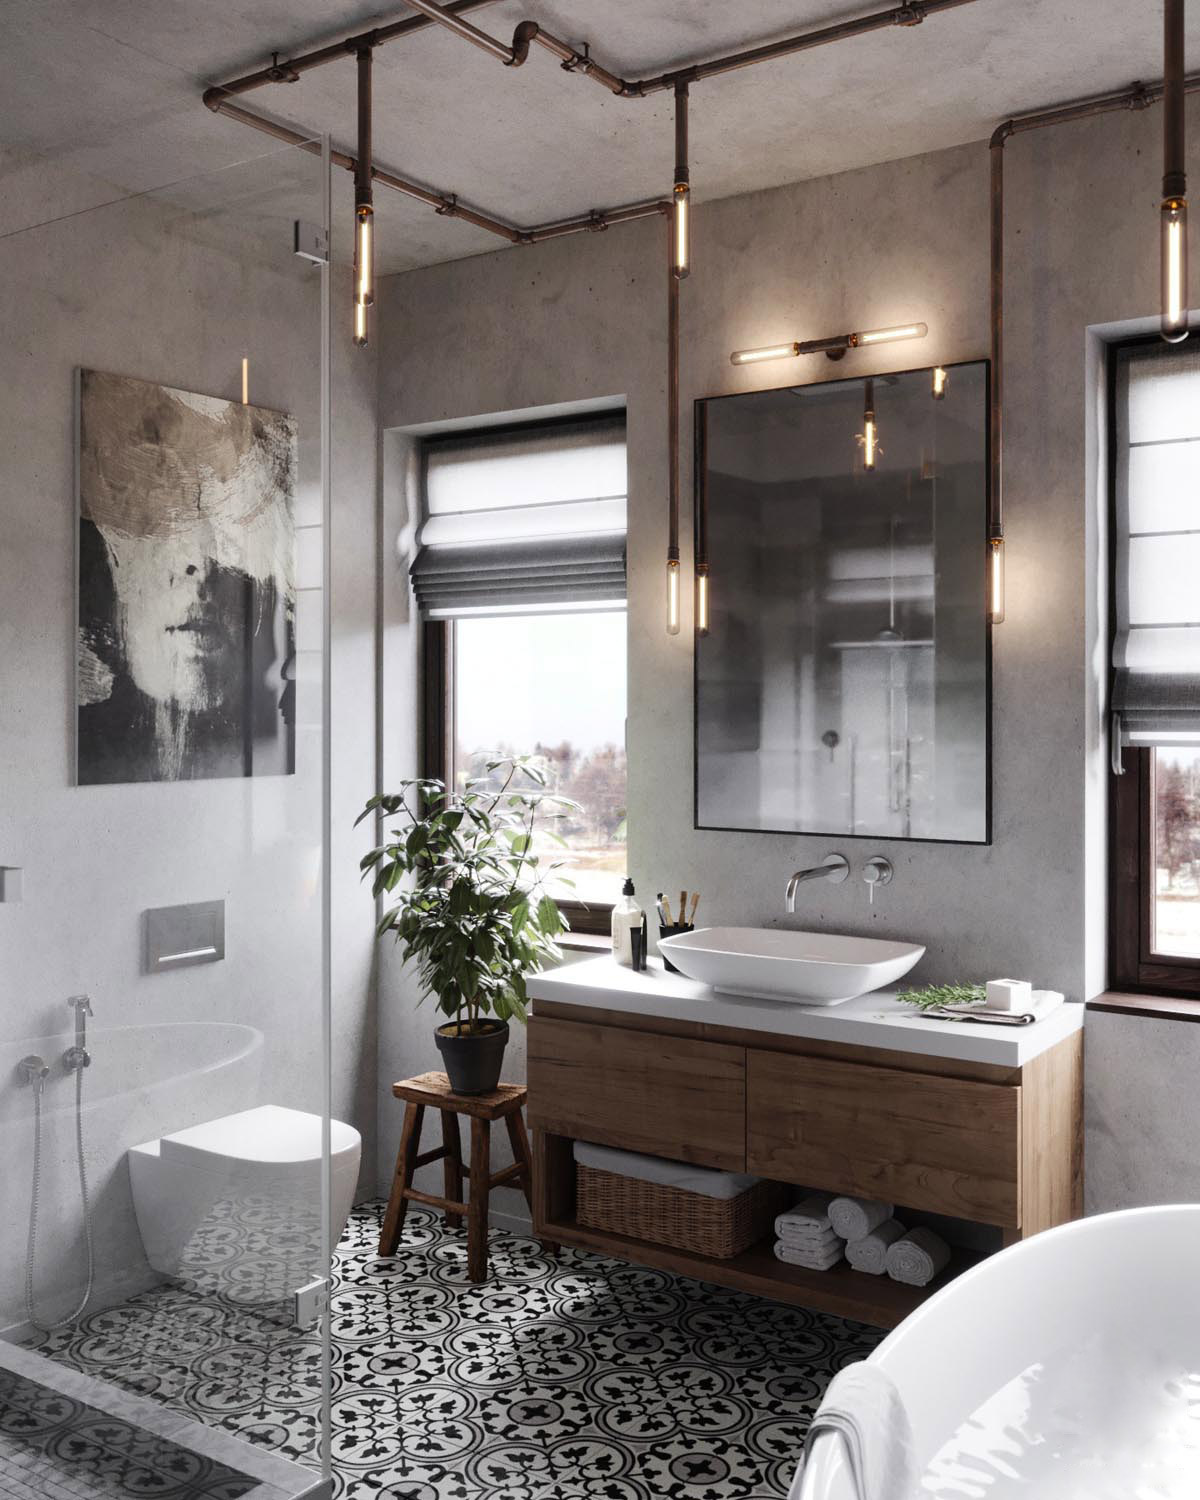 Industrial bathroom ideas that look   really modern and inspiring